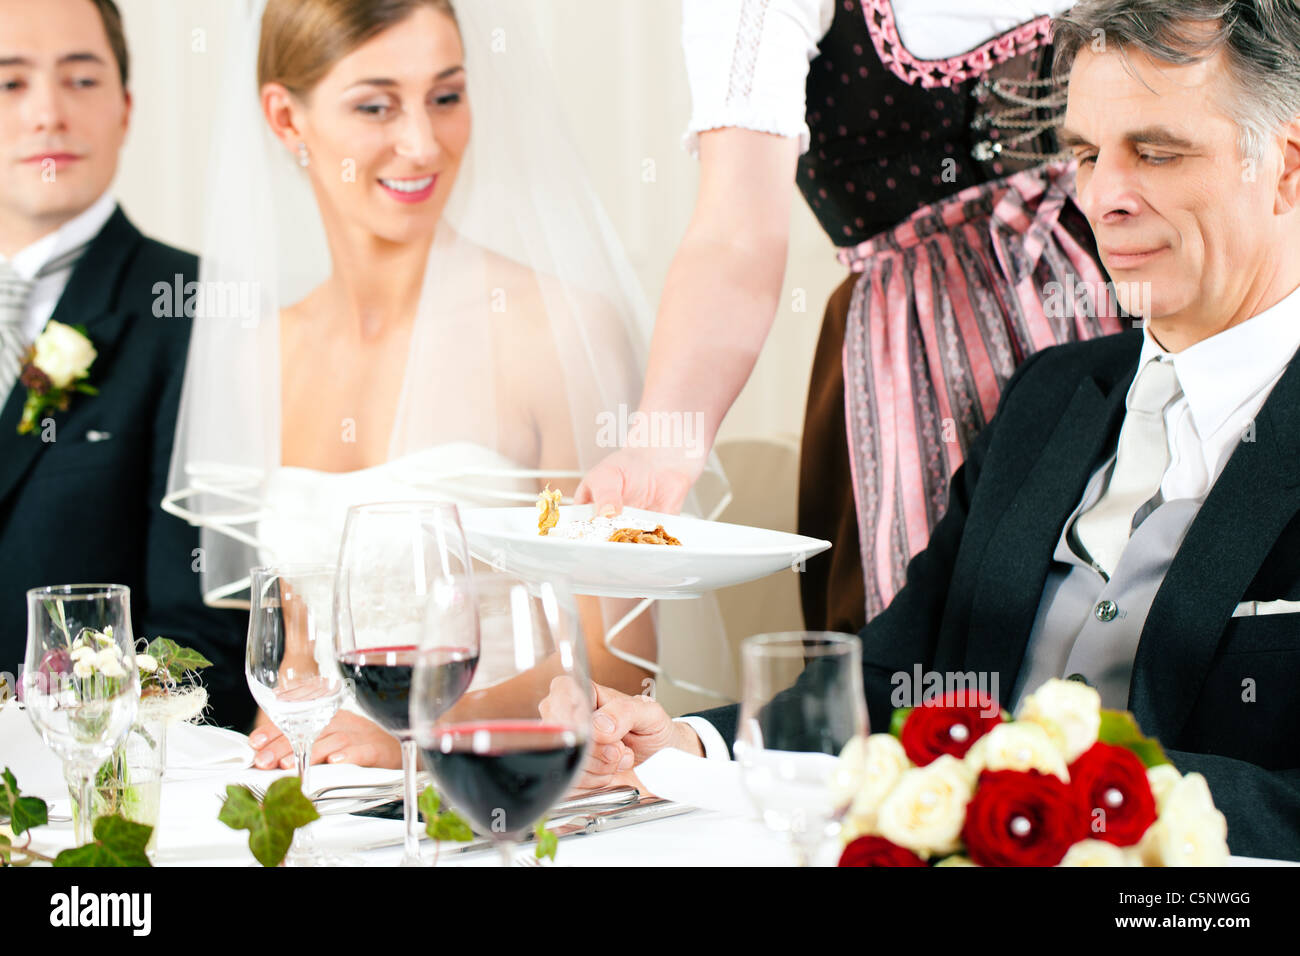 Wedding party at dinner - the dish is going to be served - Stock Image